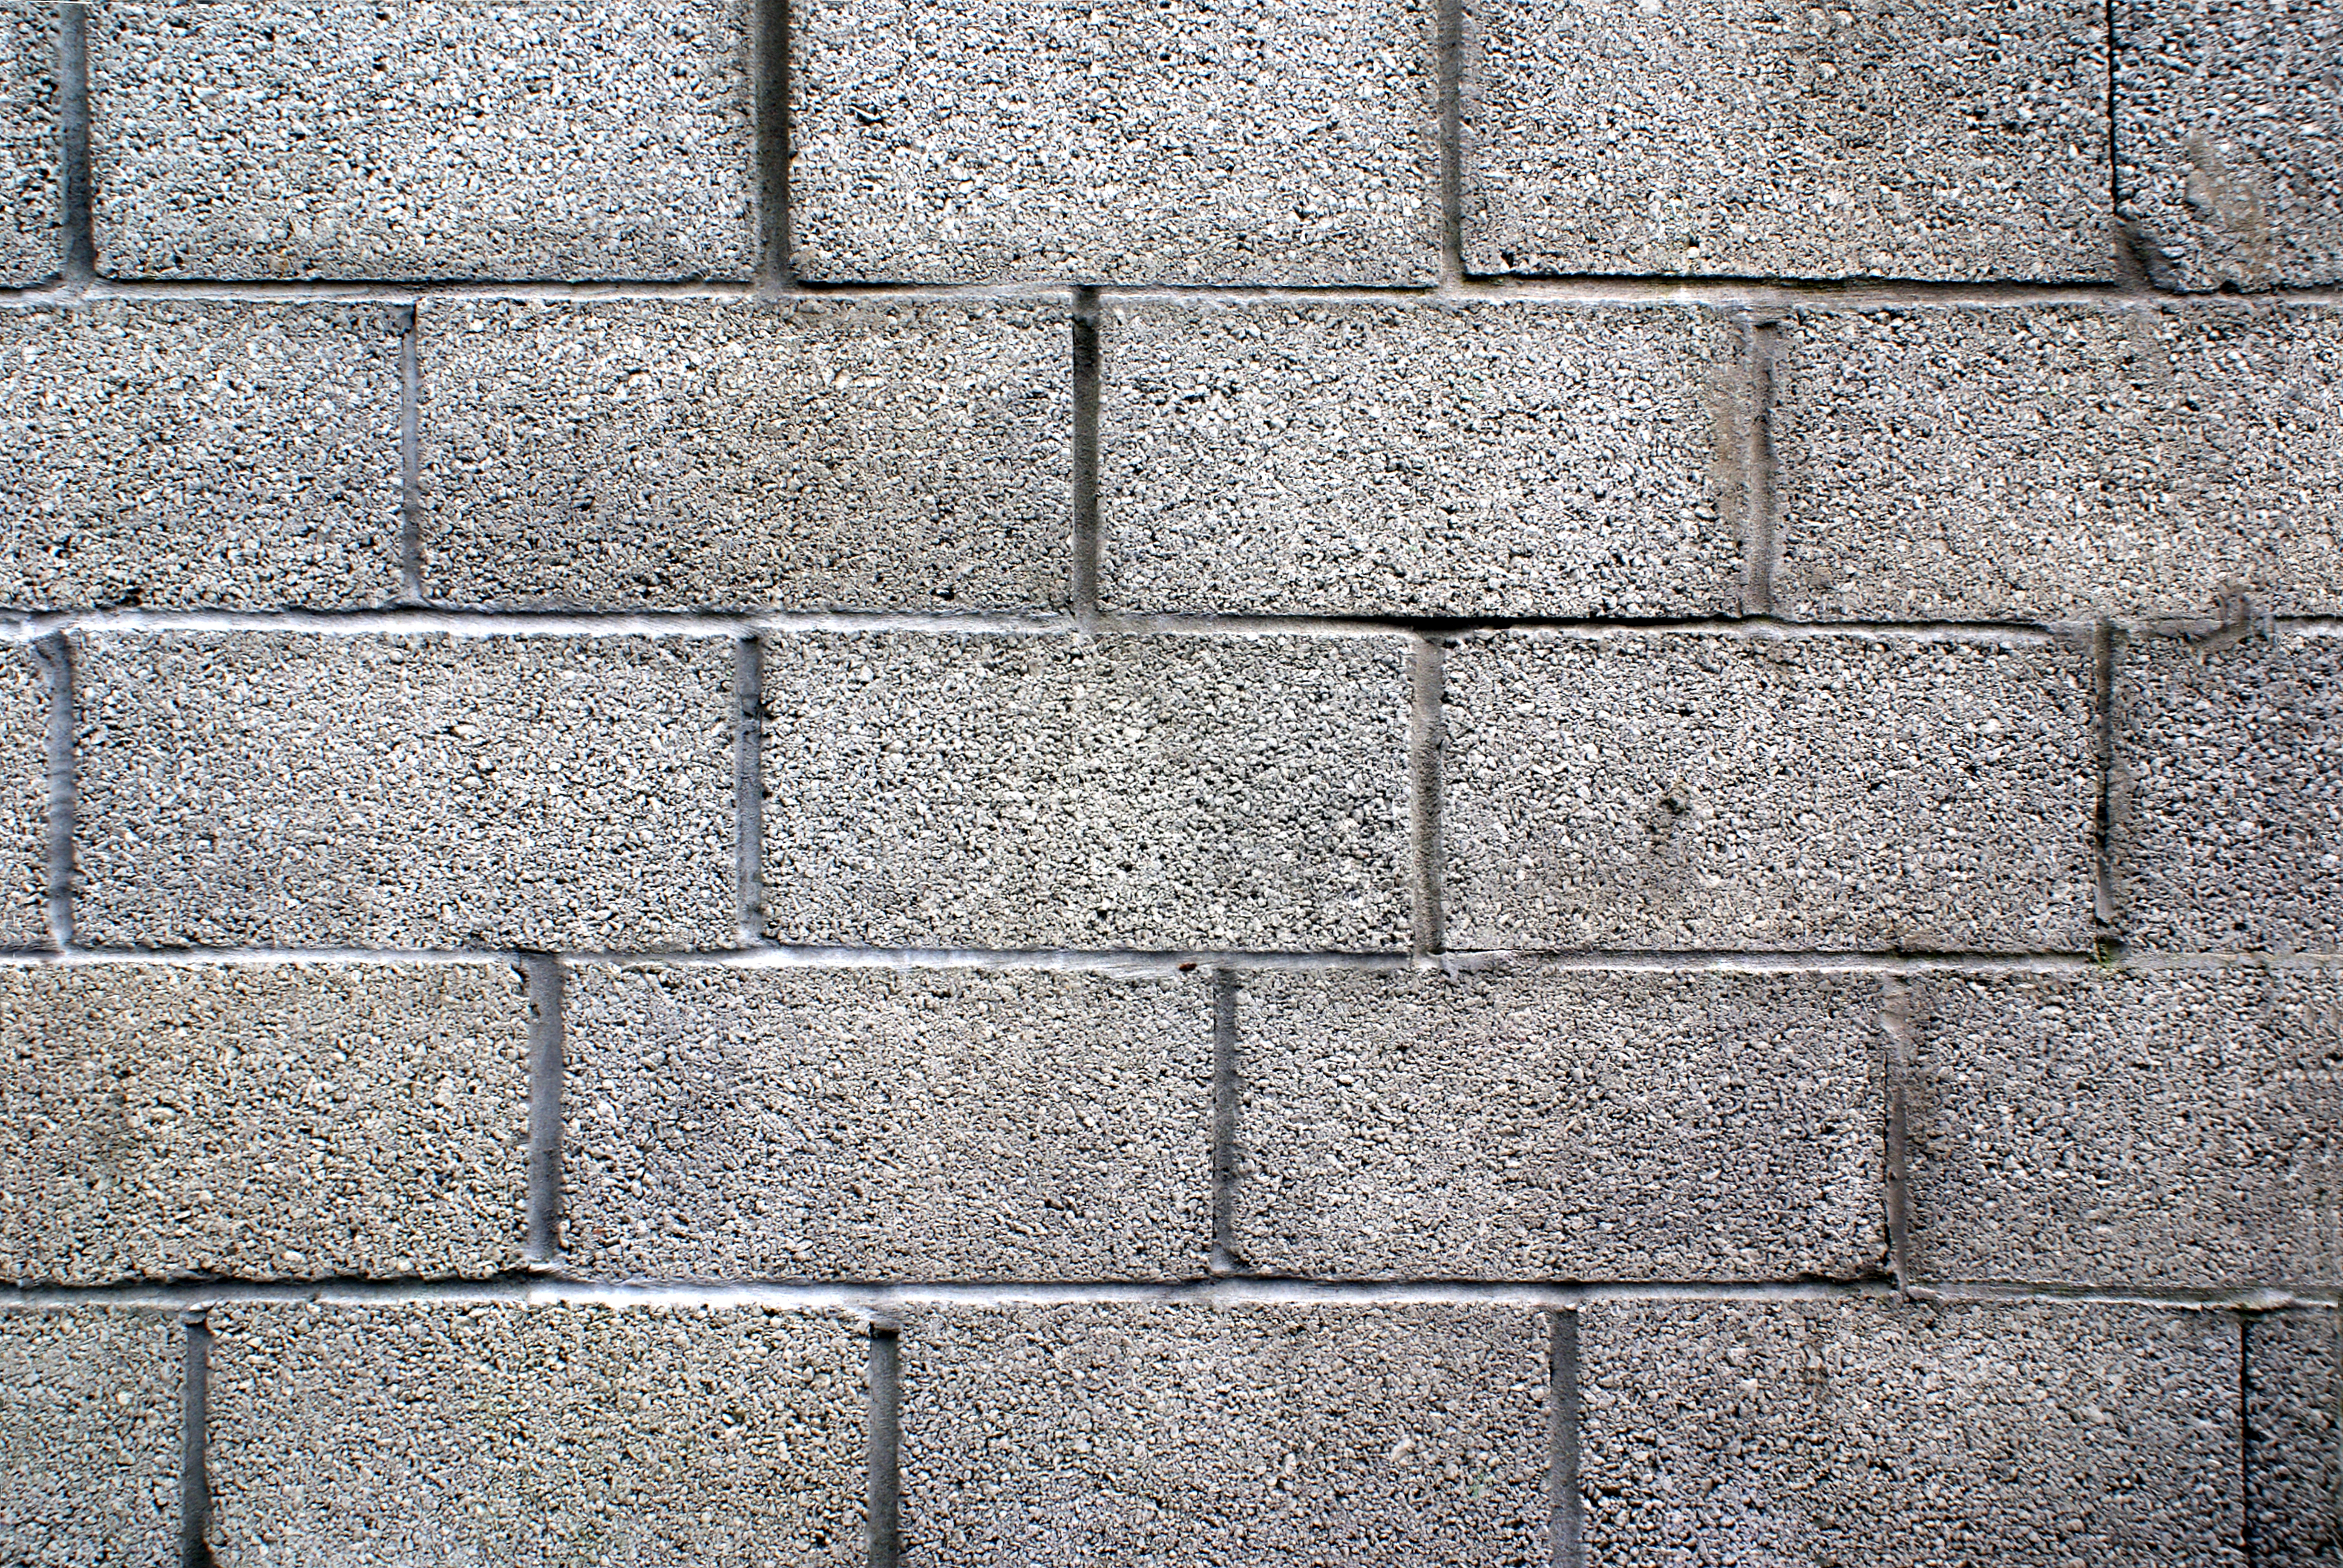 Concrete Block Wall Concrete Block Wall